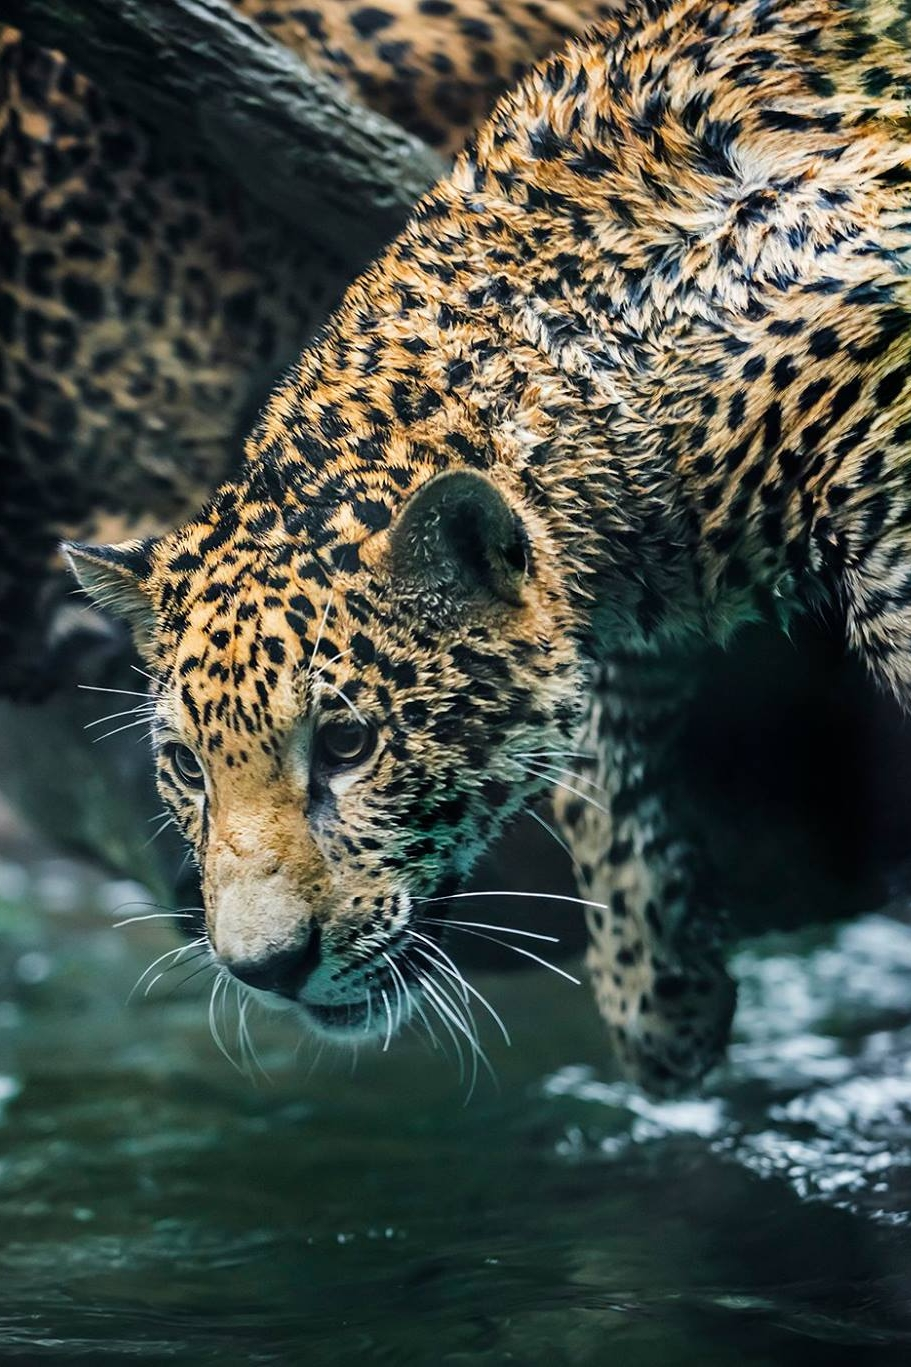 wILDLIFE - Explore the wildlife of Belize with experienced guides. Visit the jaguar preserve. Go birding in the rainforest. Go kayaking with manatees. Go swimming with whale sharks. The possibilities are endless.